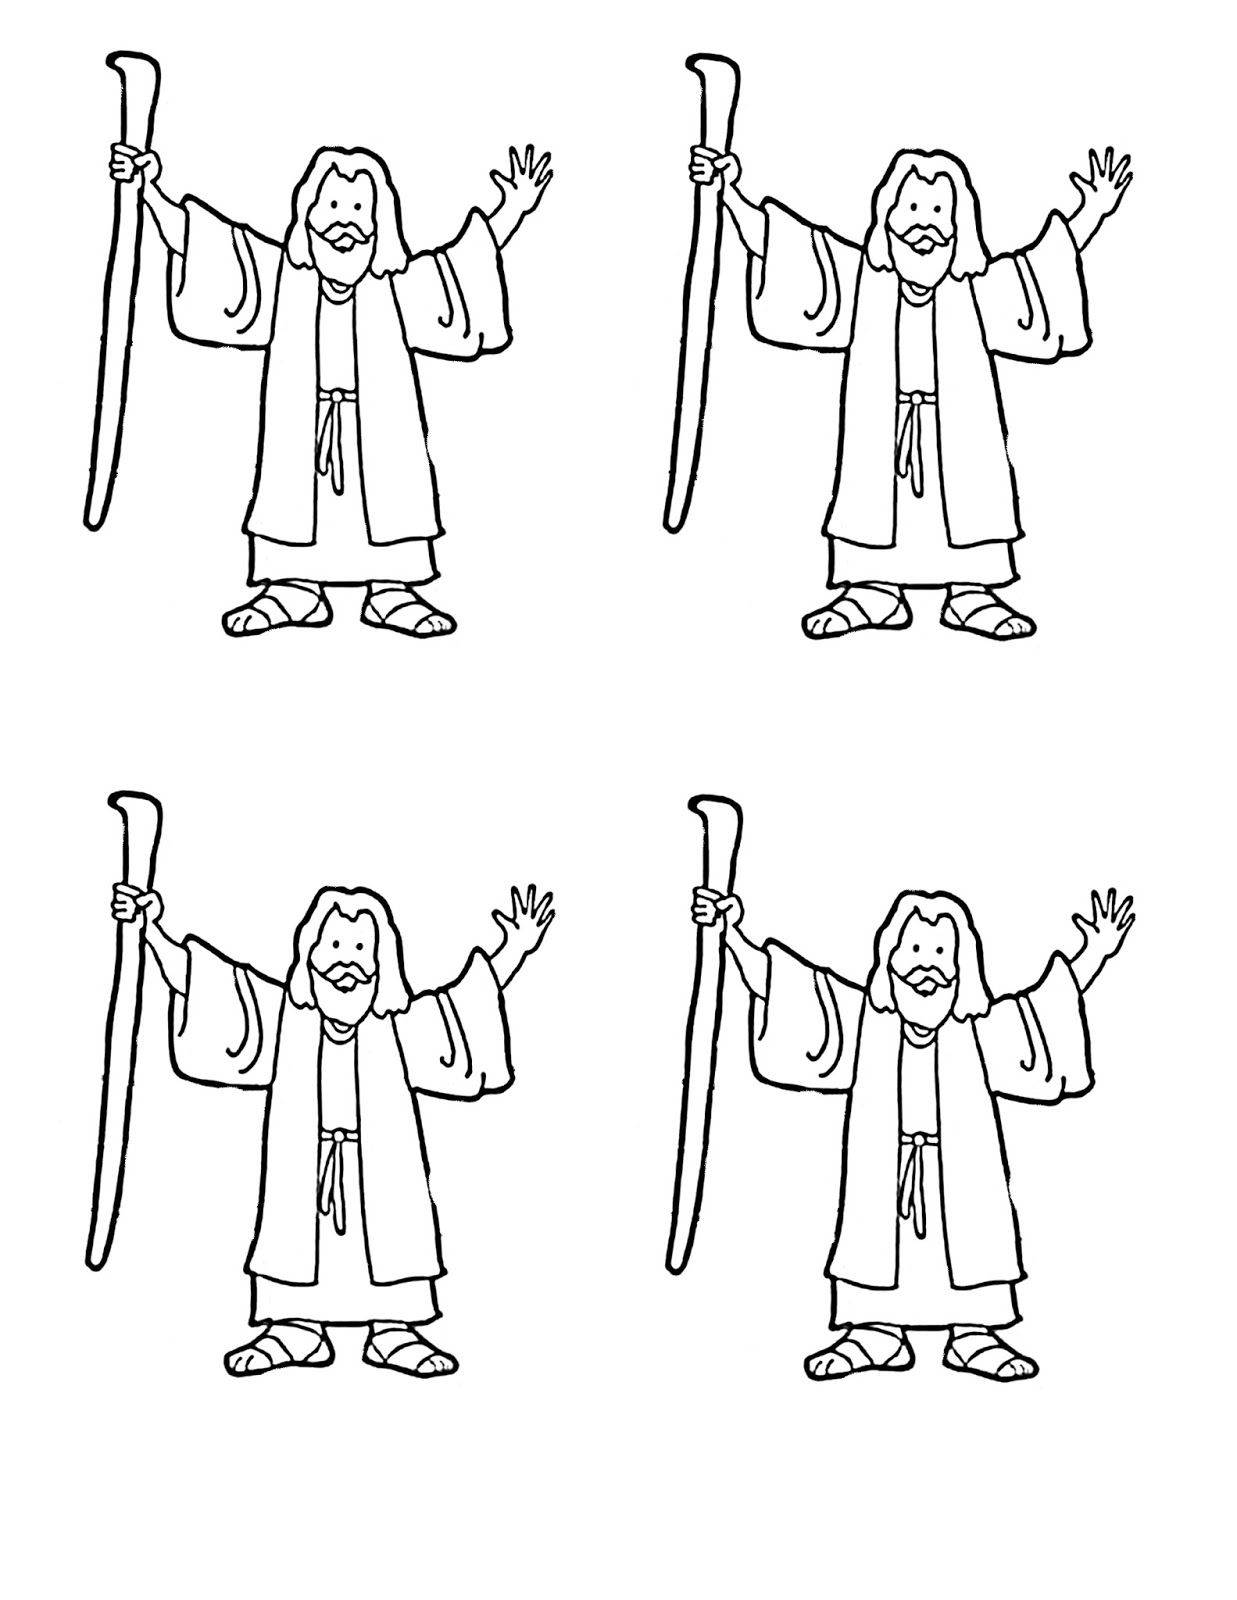 The Bible Israelites Leaving Egypt Coloring Pages Sketch